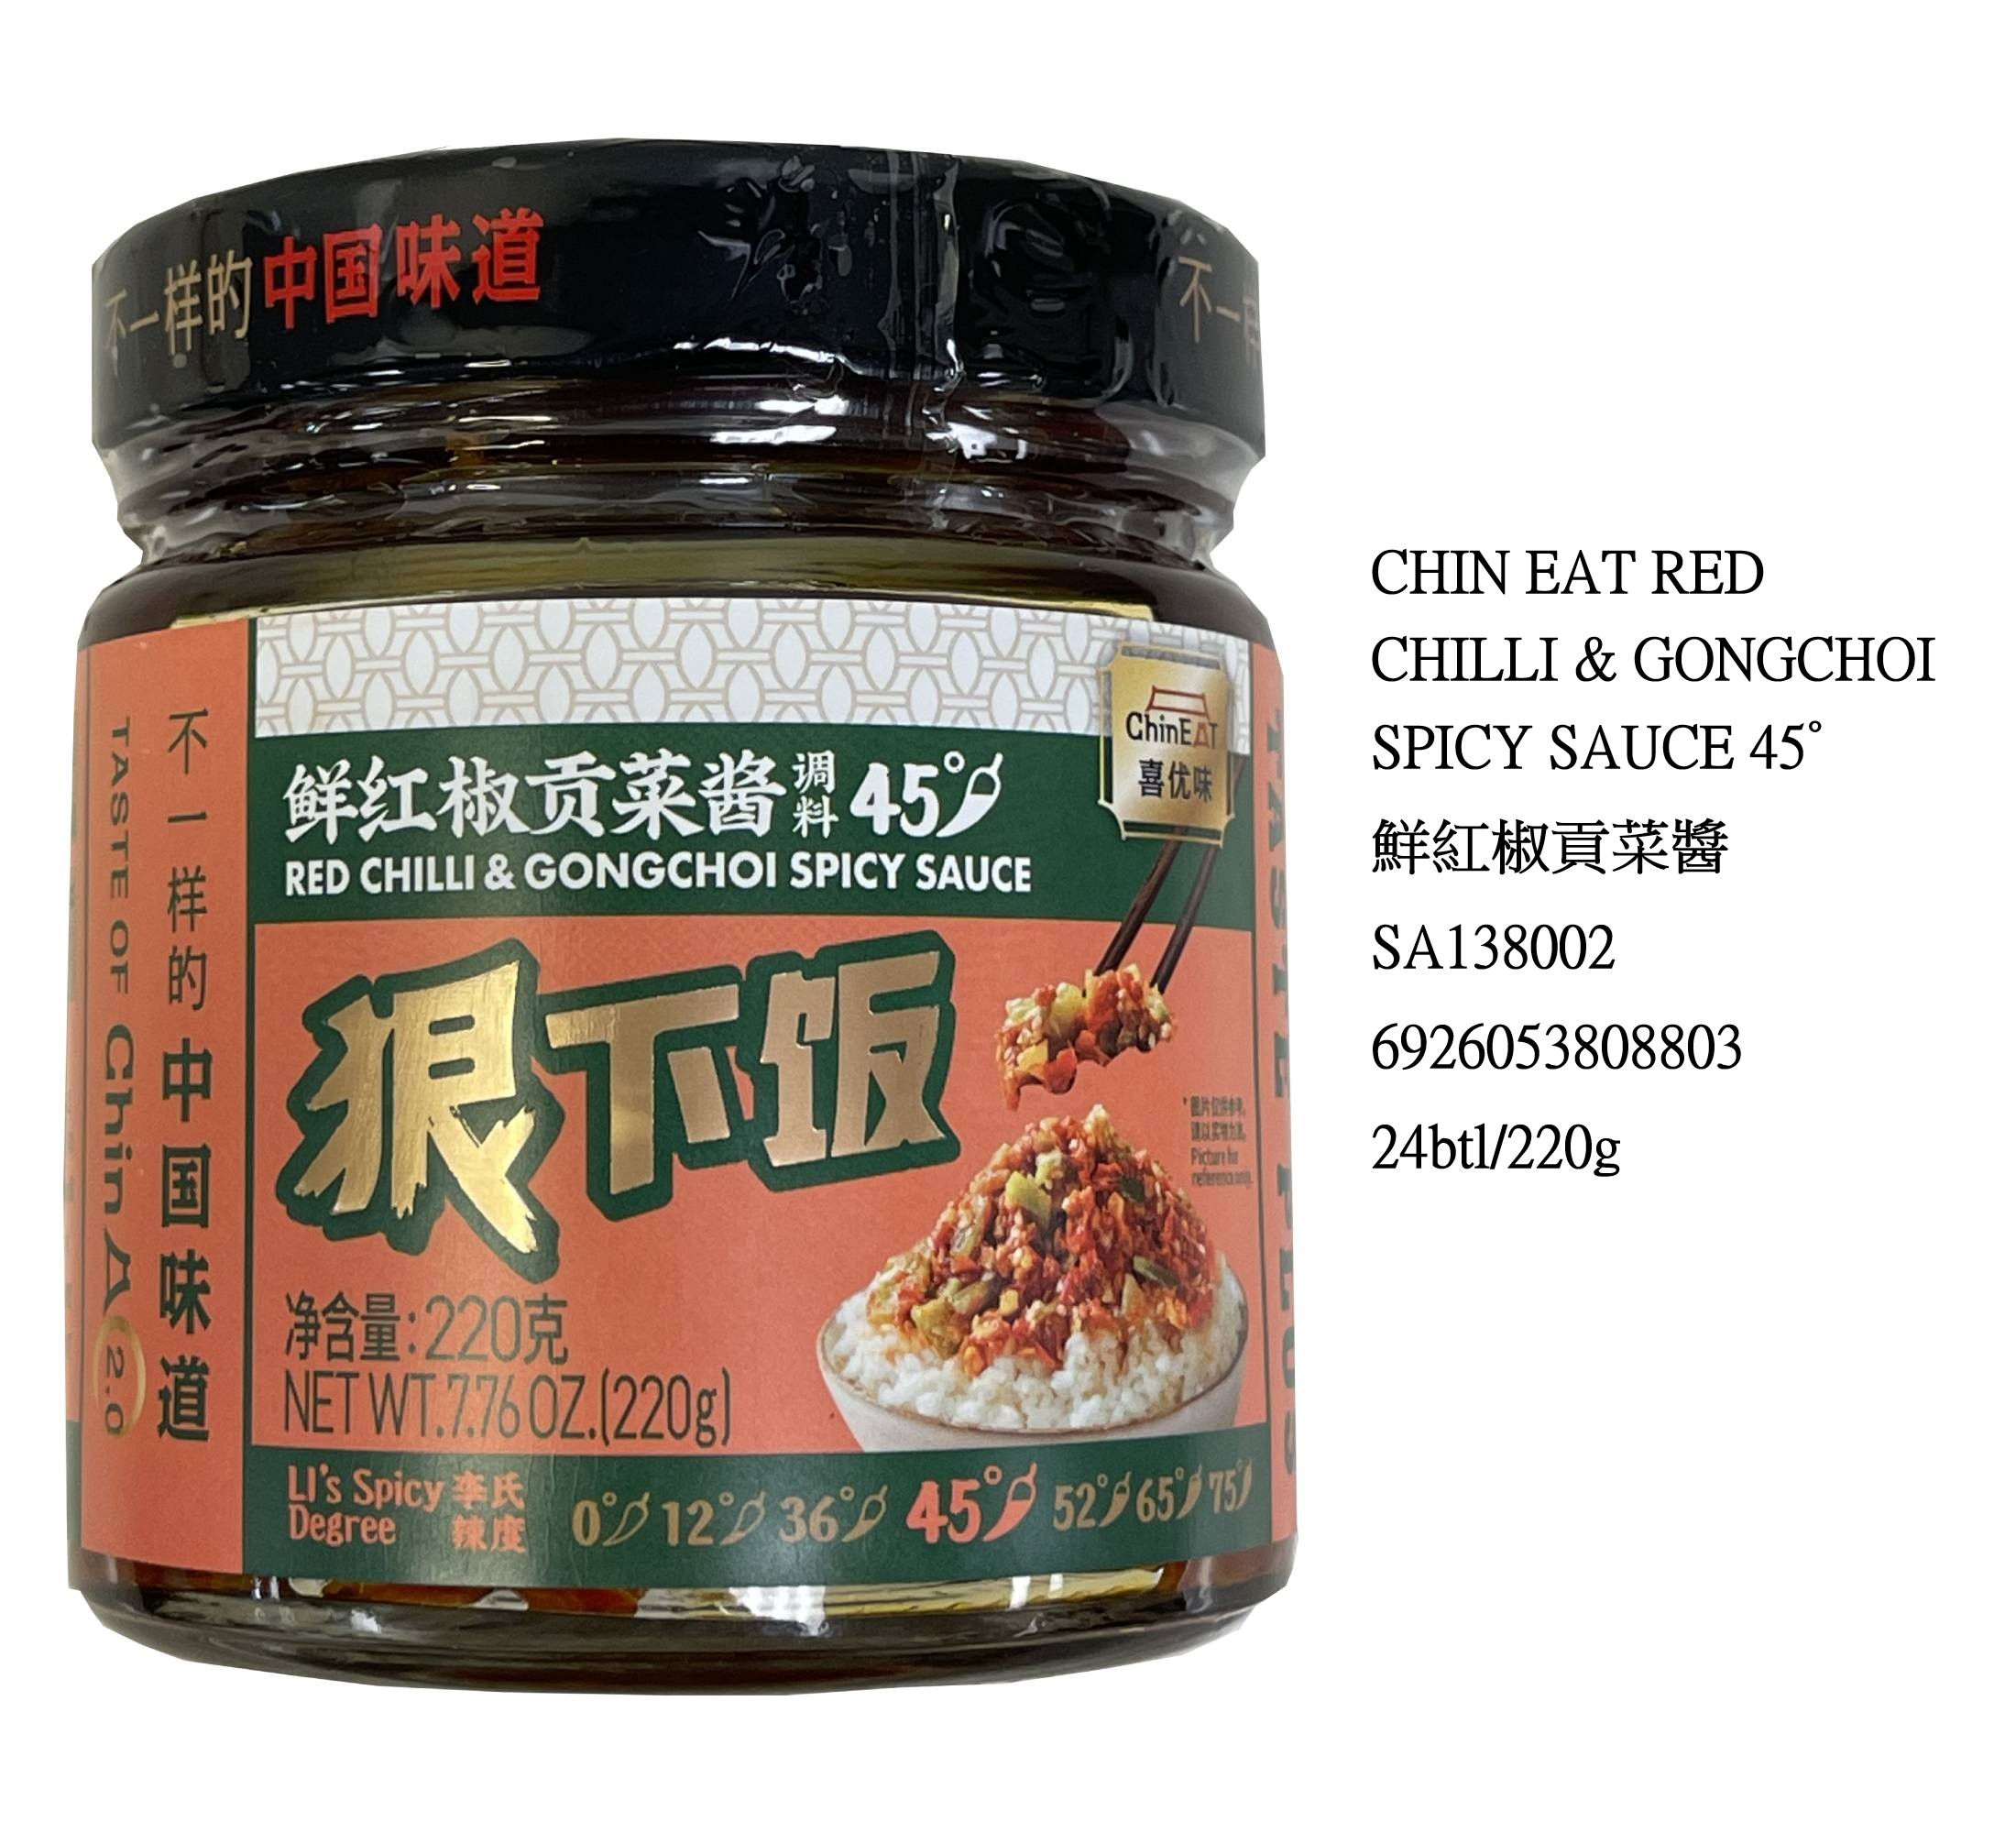 CHINEAT RED CHILLI & GONGCHOI SPICY SAUCE 45° SA138002